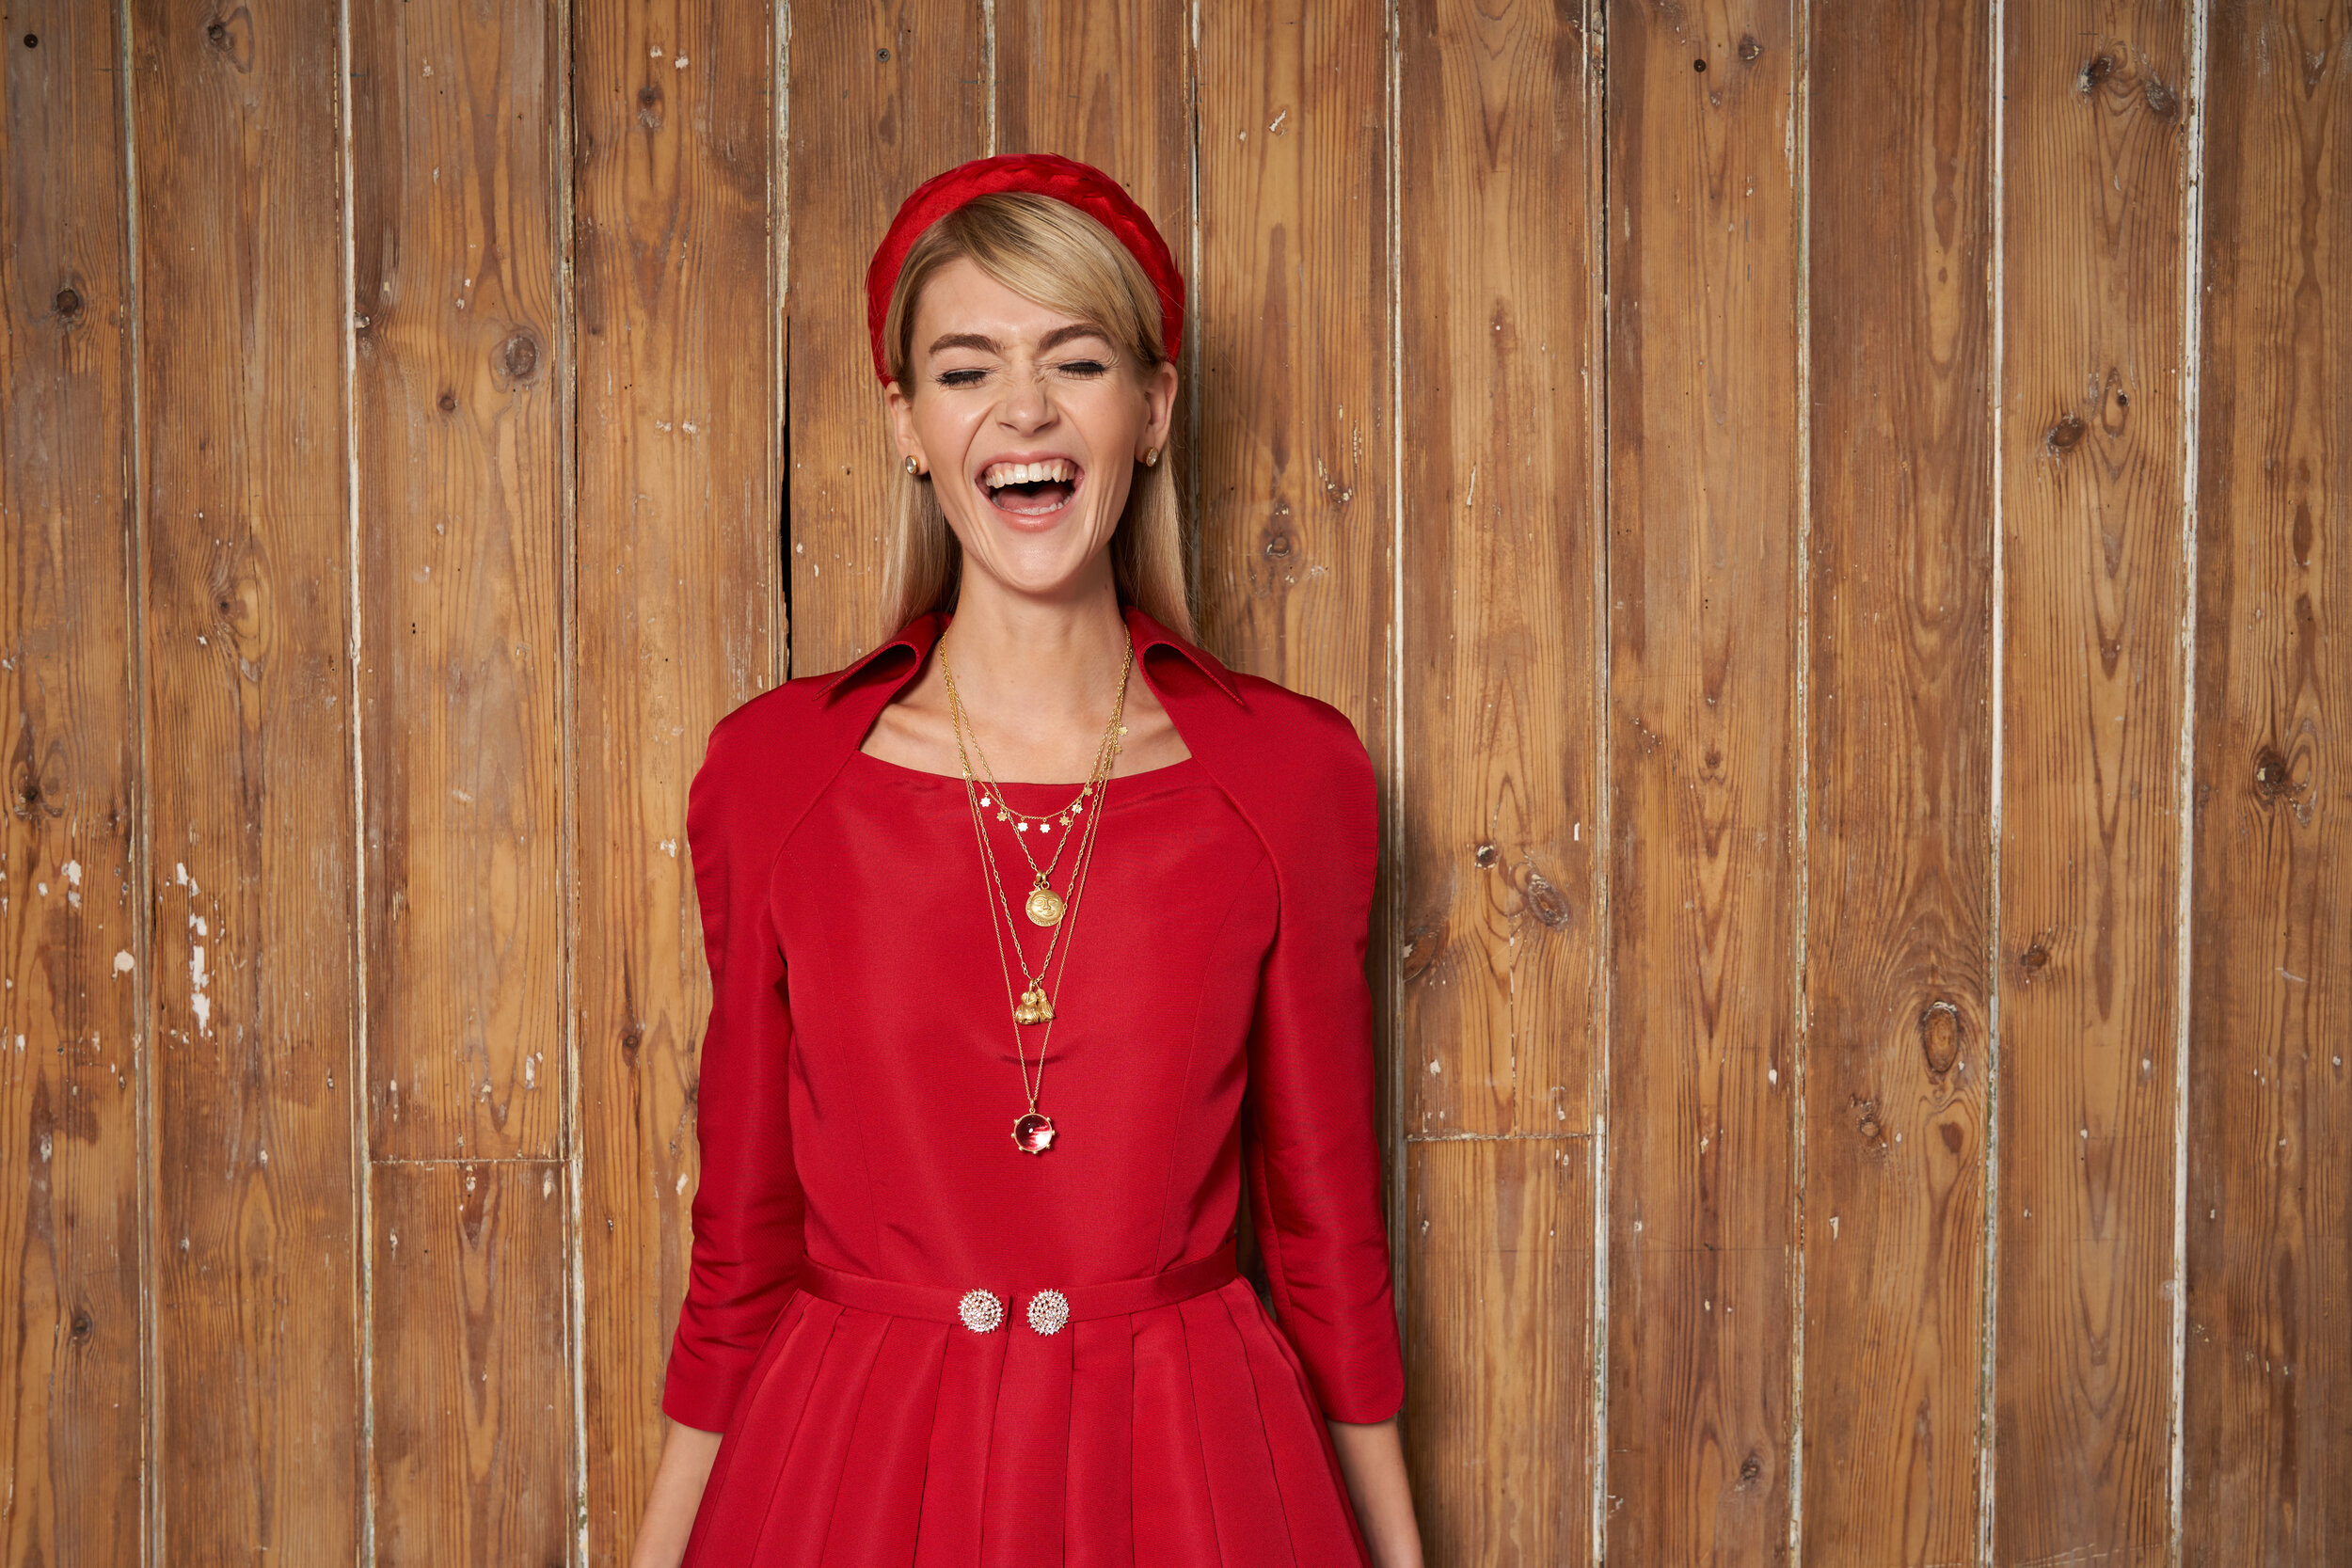 Eve wearing Sophie Theakston necklaces & earrings with our Titania dress at our AW20 shoot